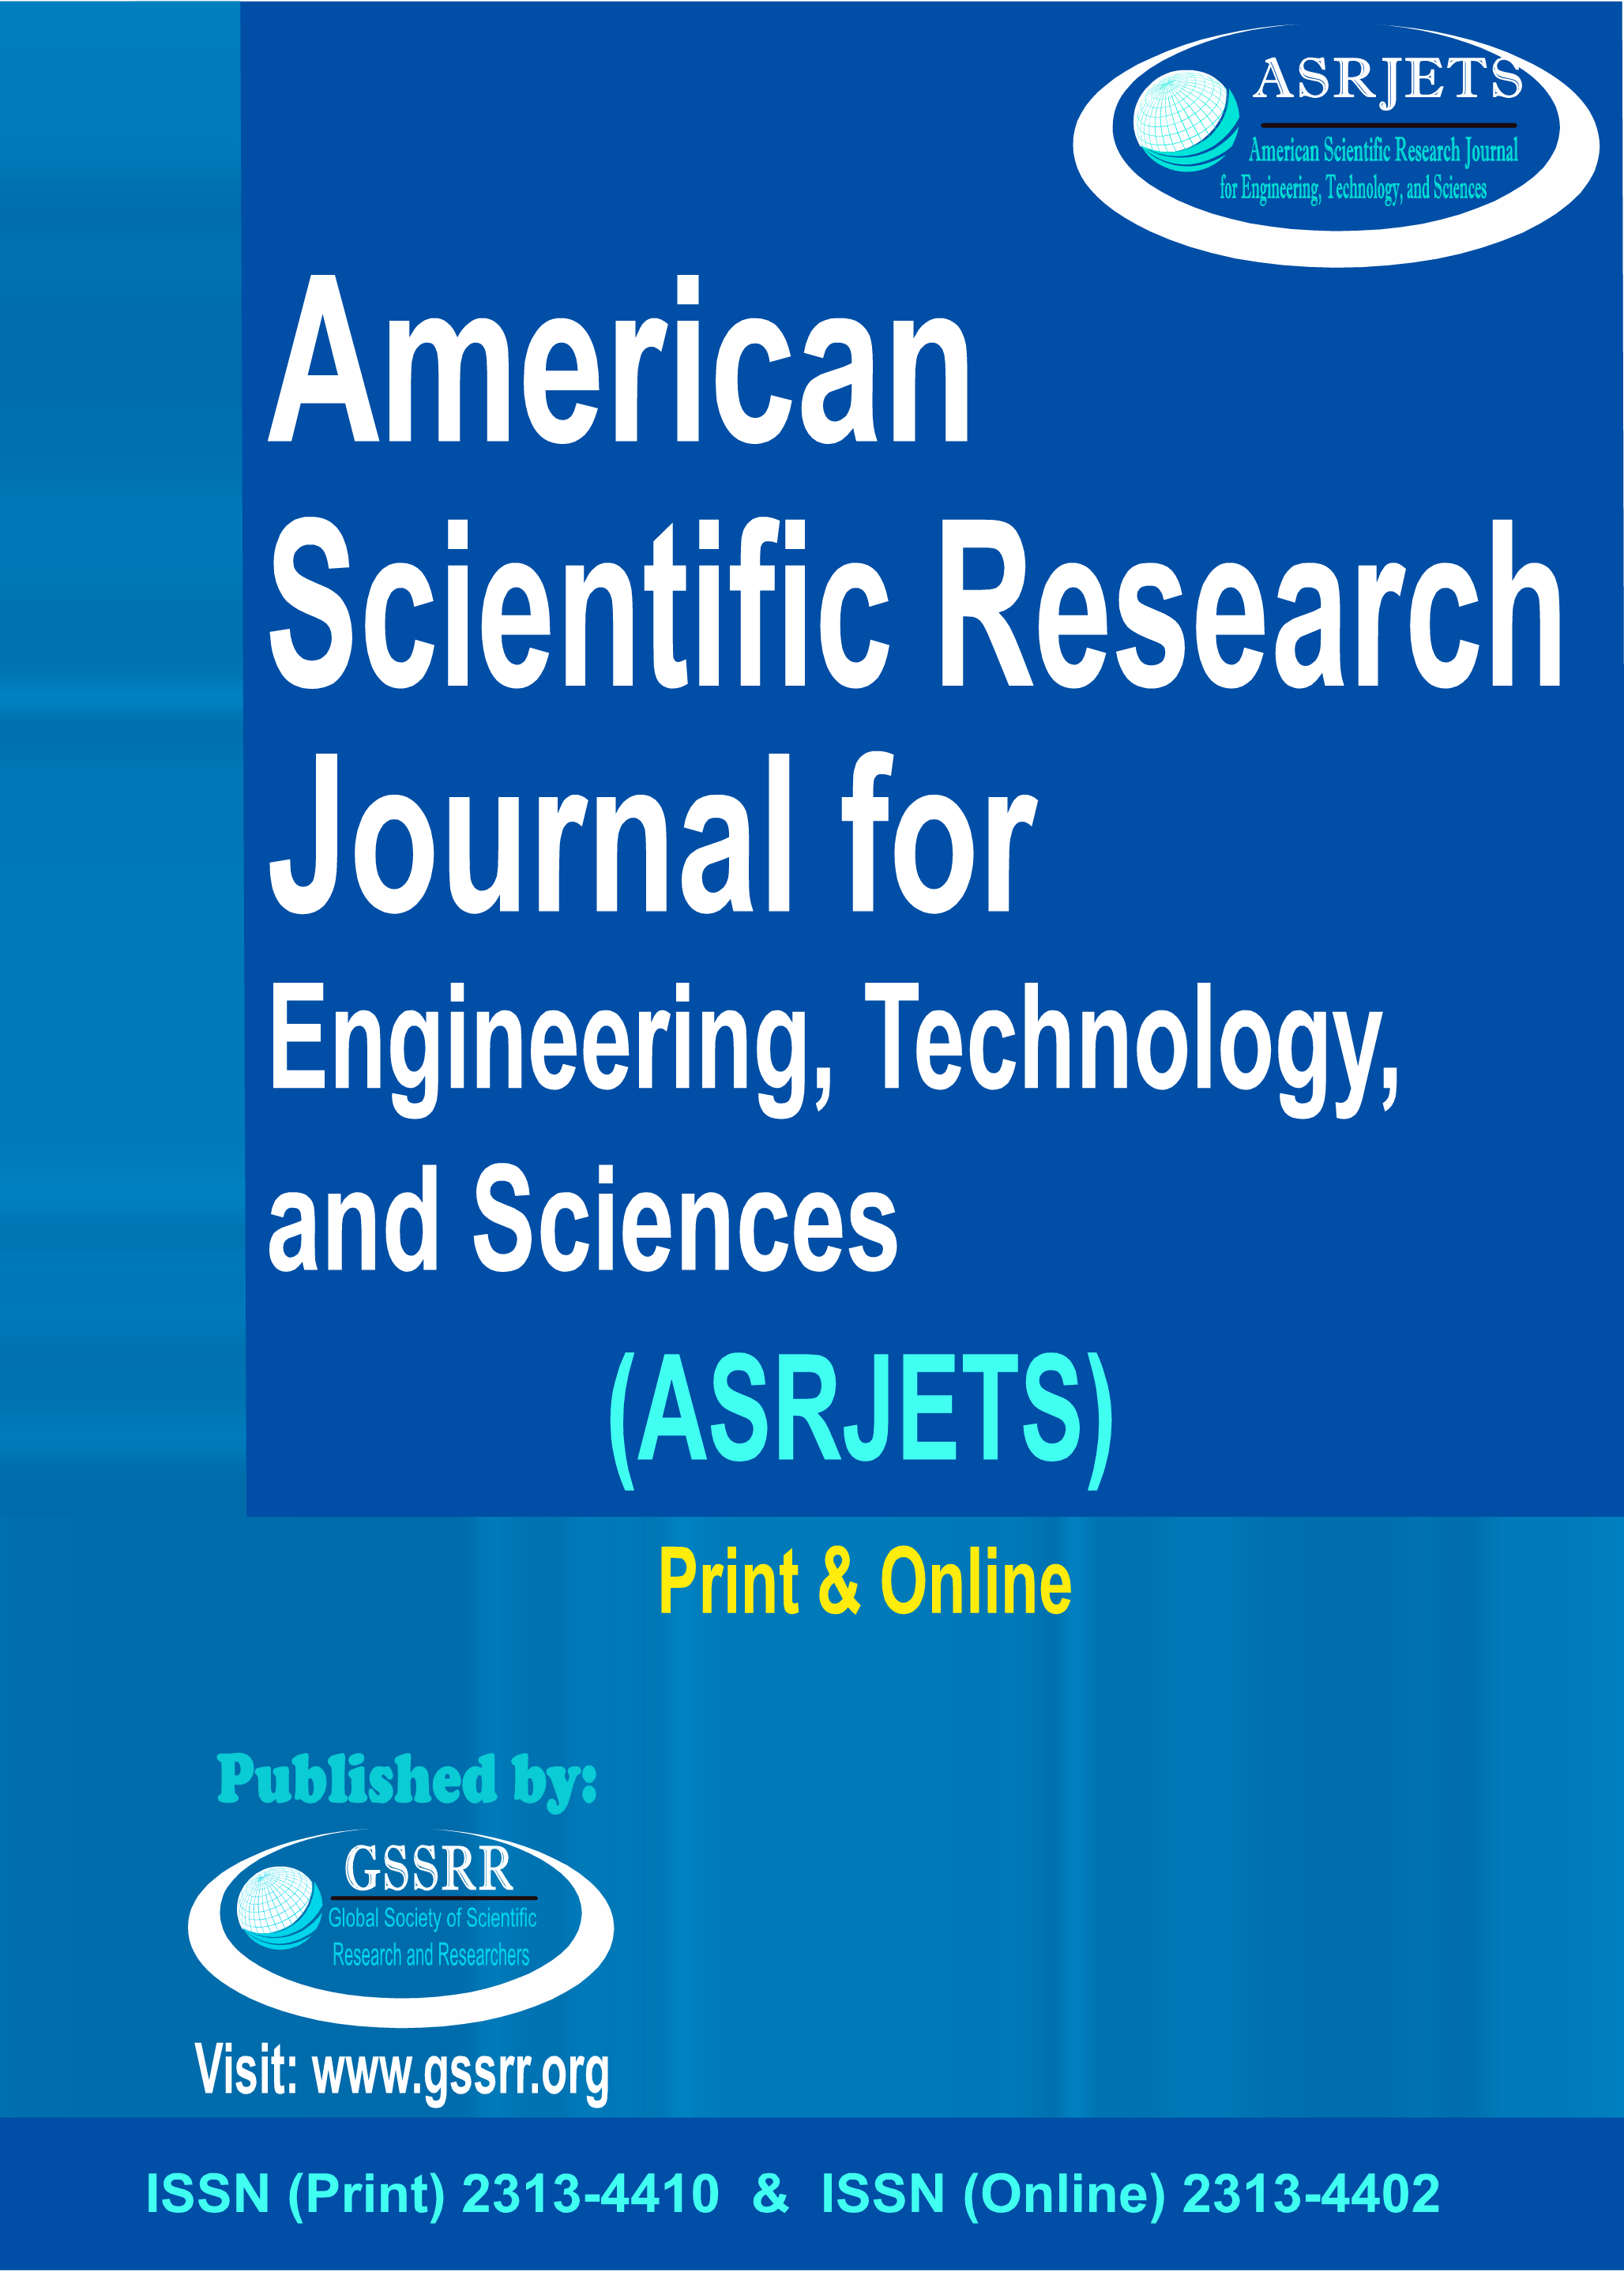 003 How To Publish Research Paper In Computer Science Fearsome A Full